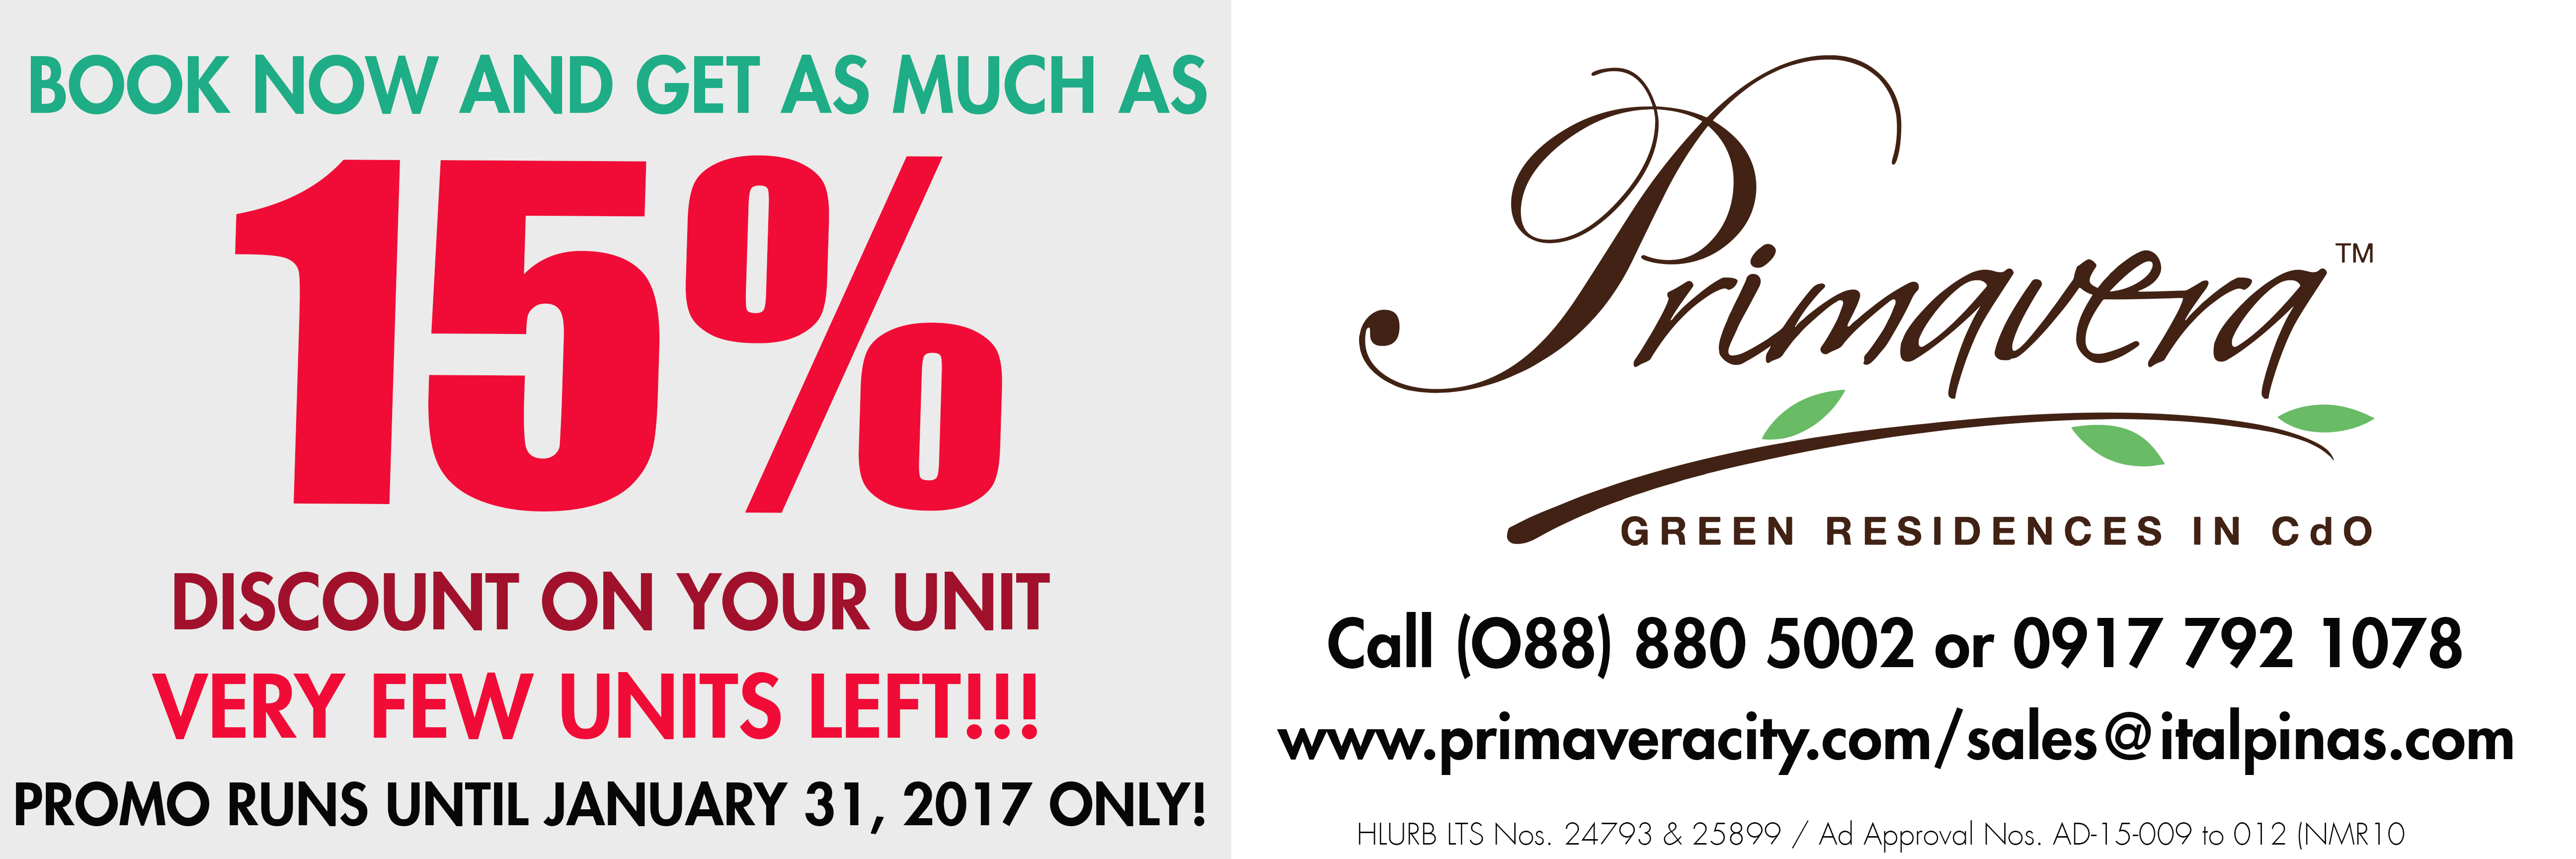 Primavera Residences Offers Special Discount Sale